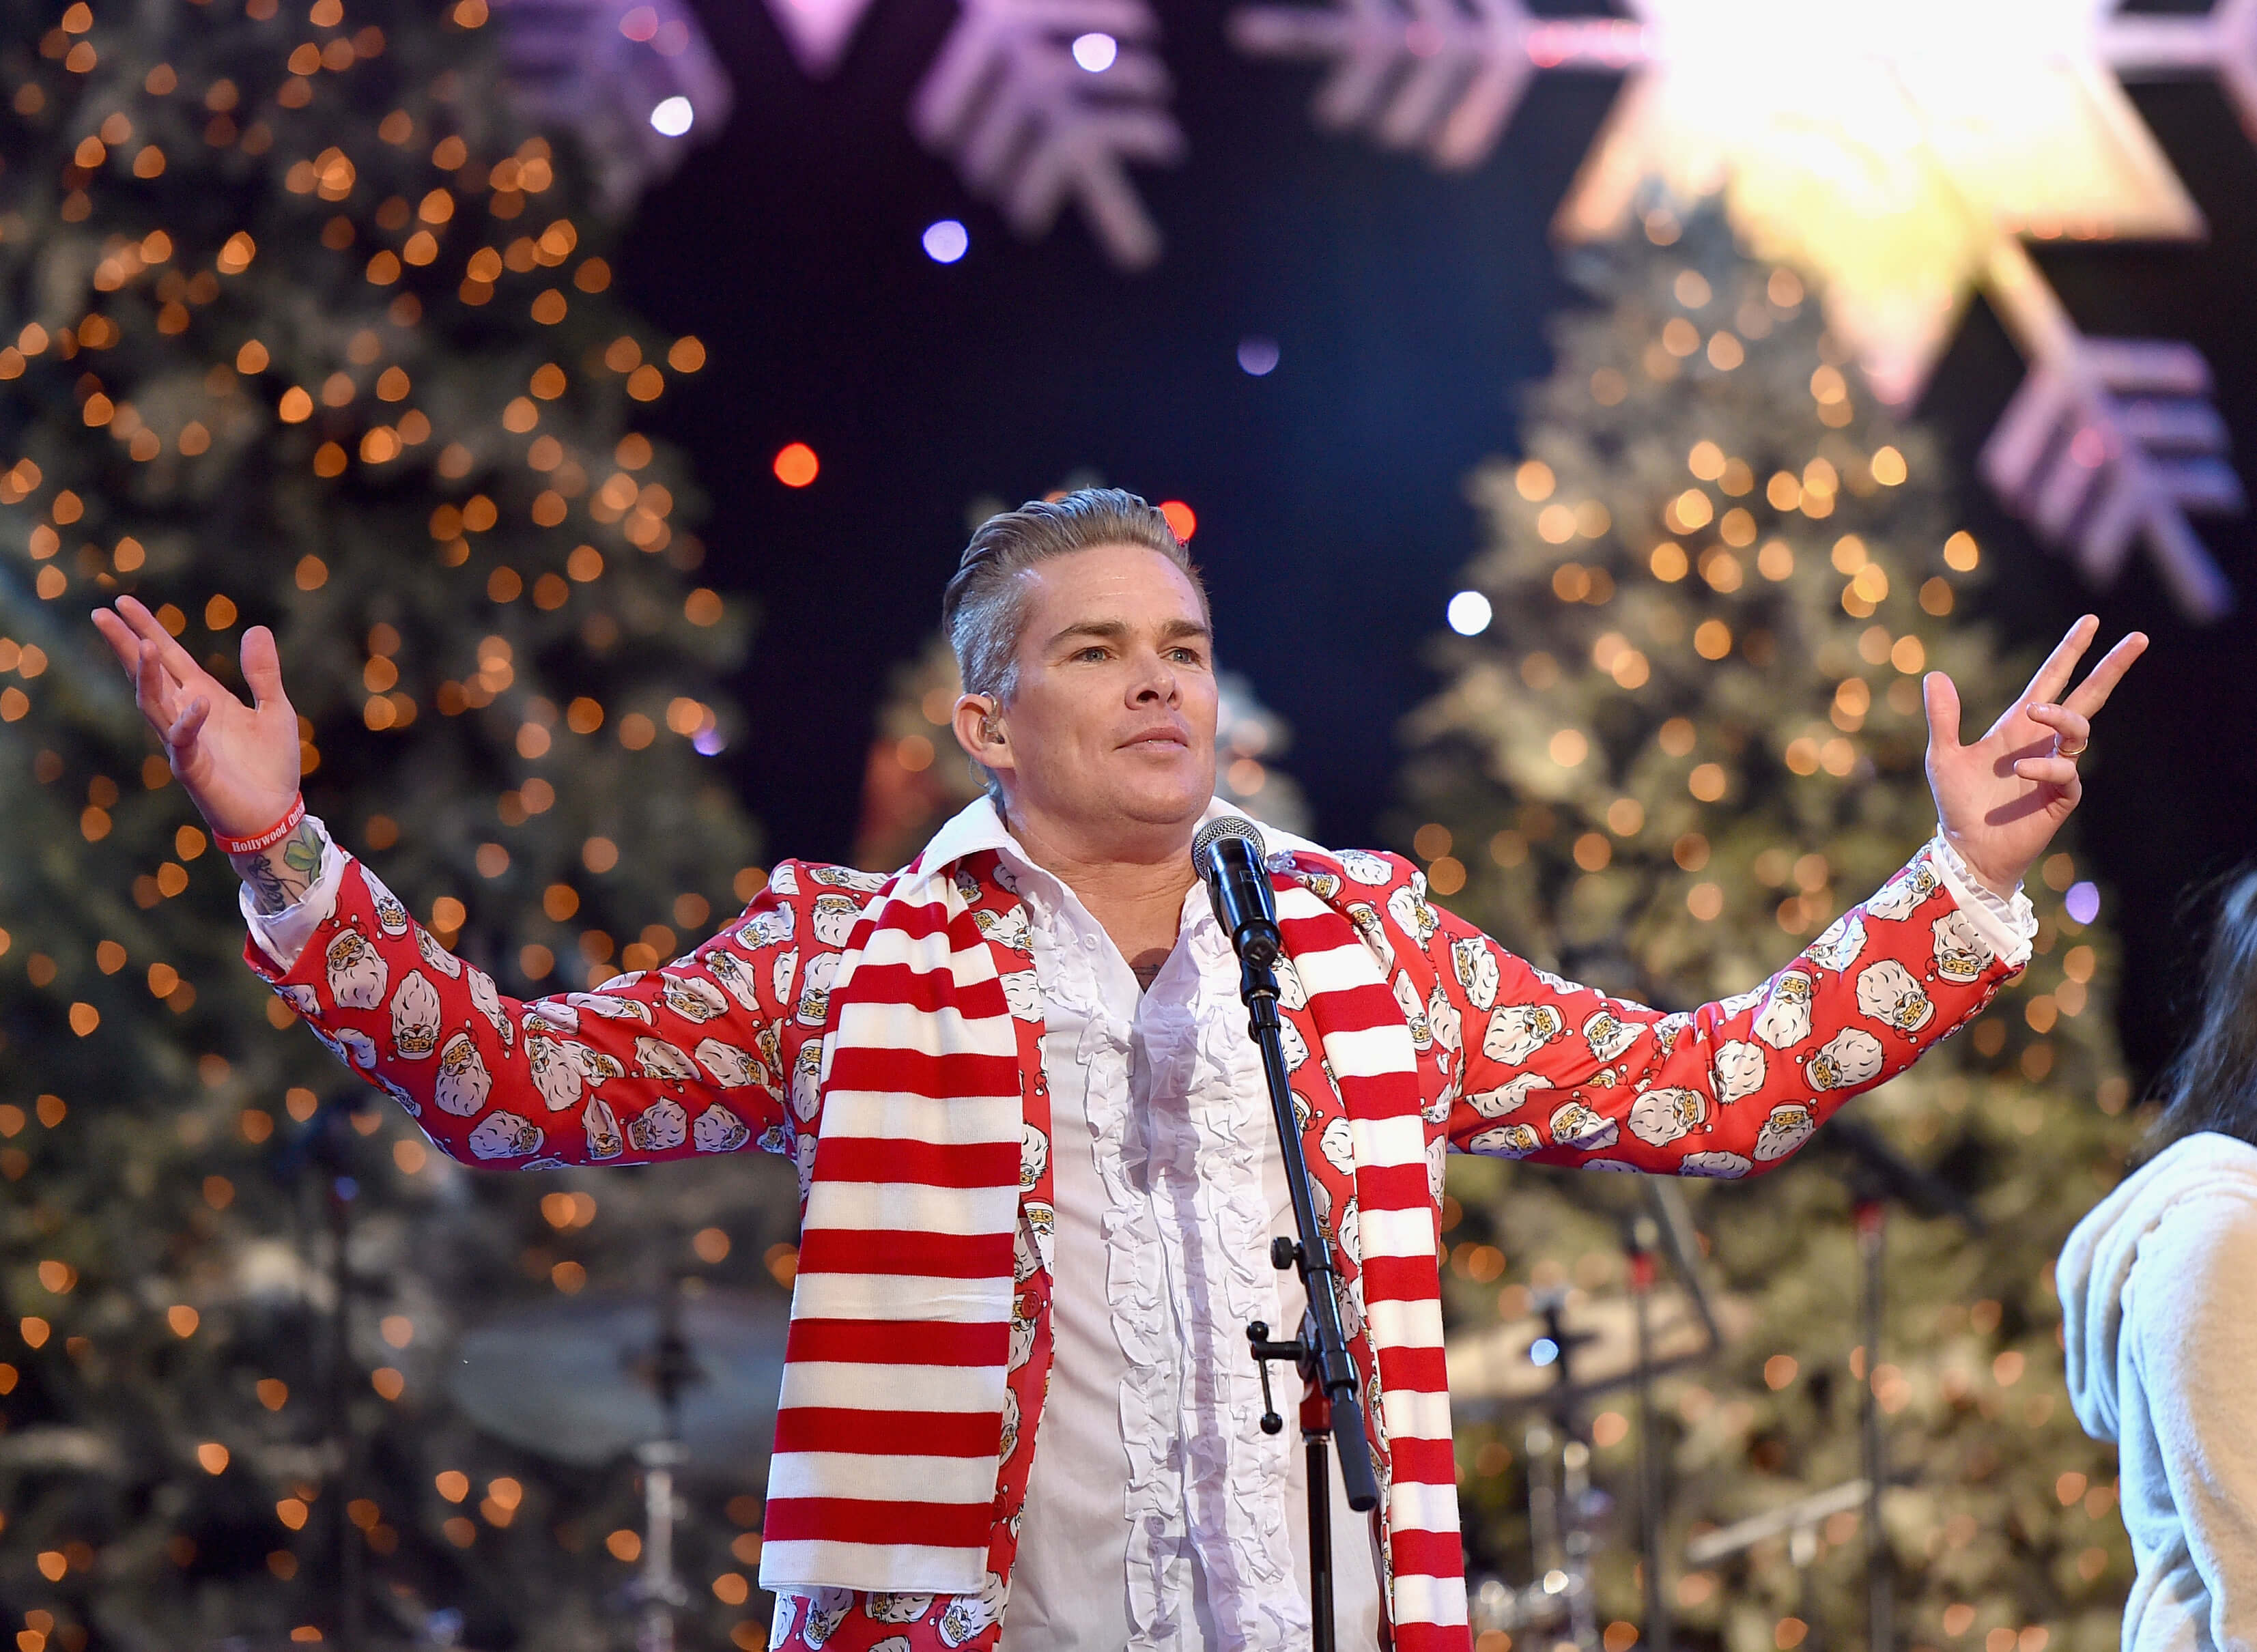 HOLLYWOOD, CA - NOVEMBER 29: Musician Mark McGrath of Band of Merrymakers performs onstage during the 2015 Hollywood Christmas Parade on November 29, 2015 in Hollywood, California.  (Photo by Mike Windle/Getty Images for The Hollywood Christmas Parade)